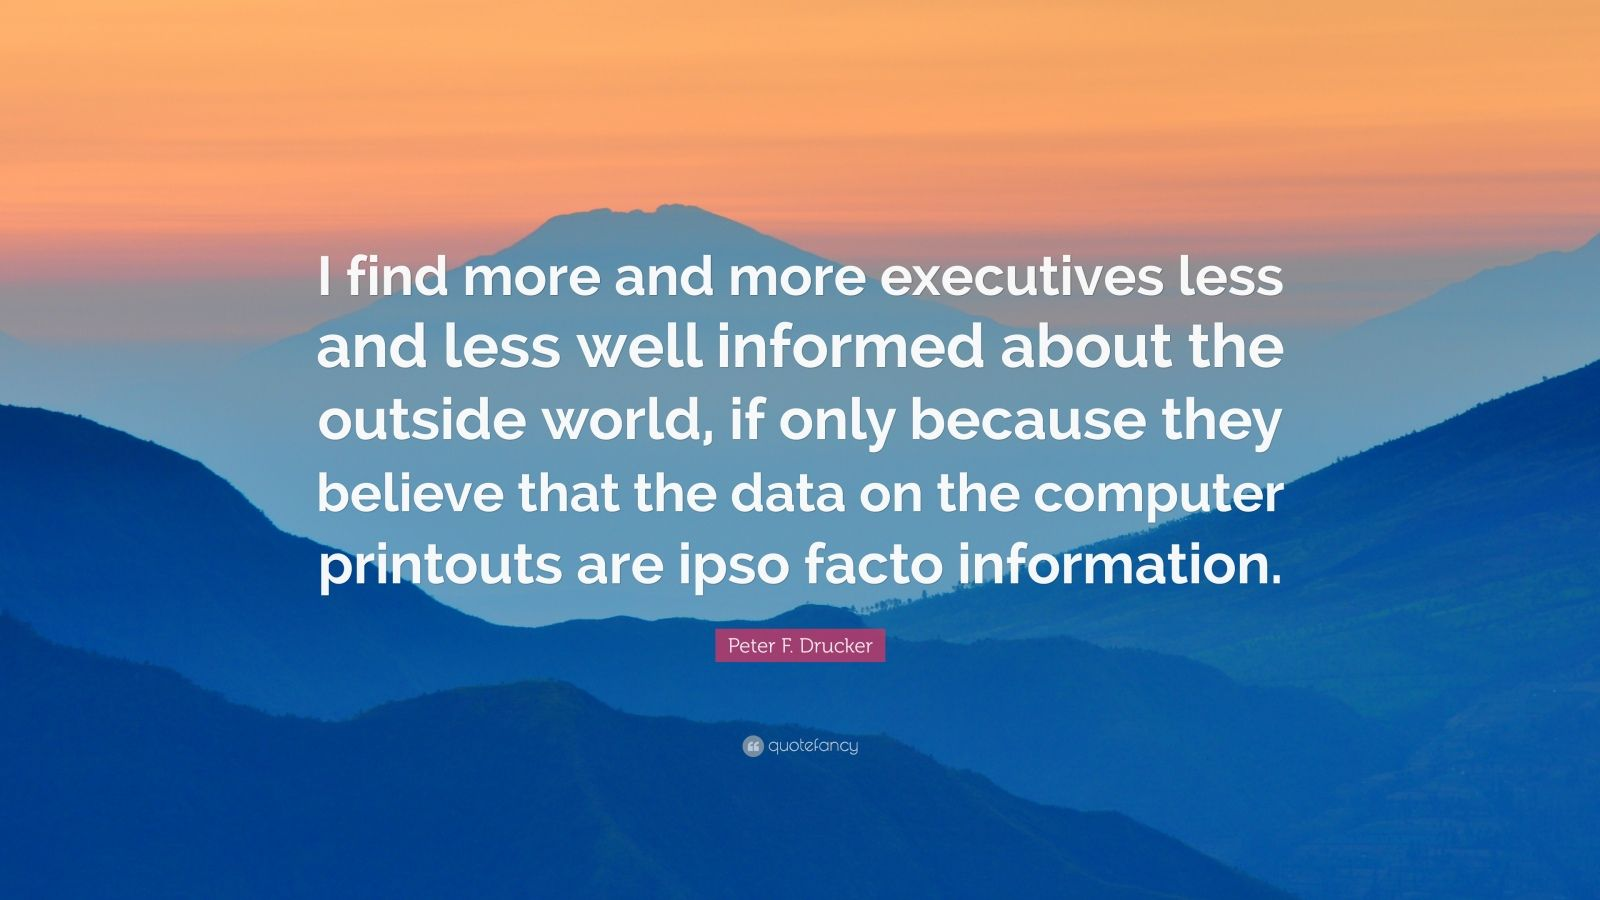 """Peter F. Drucker Quote: """"I find more and more executives less and less well informed about the outside world, if only because they believe that the data on the computer printouts are ipso facto information."""""""